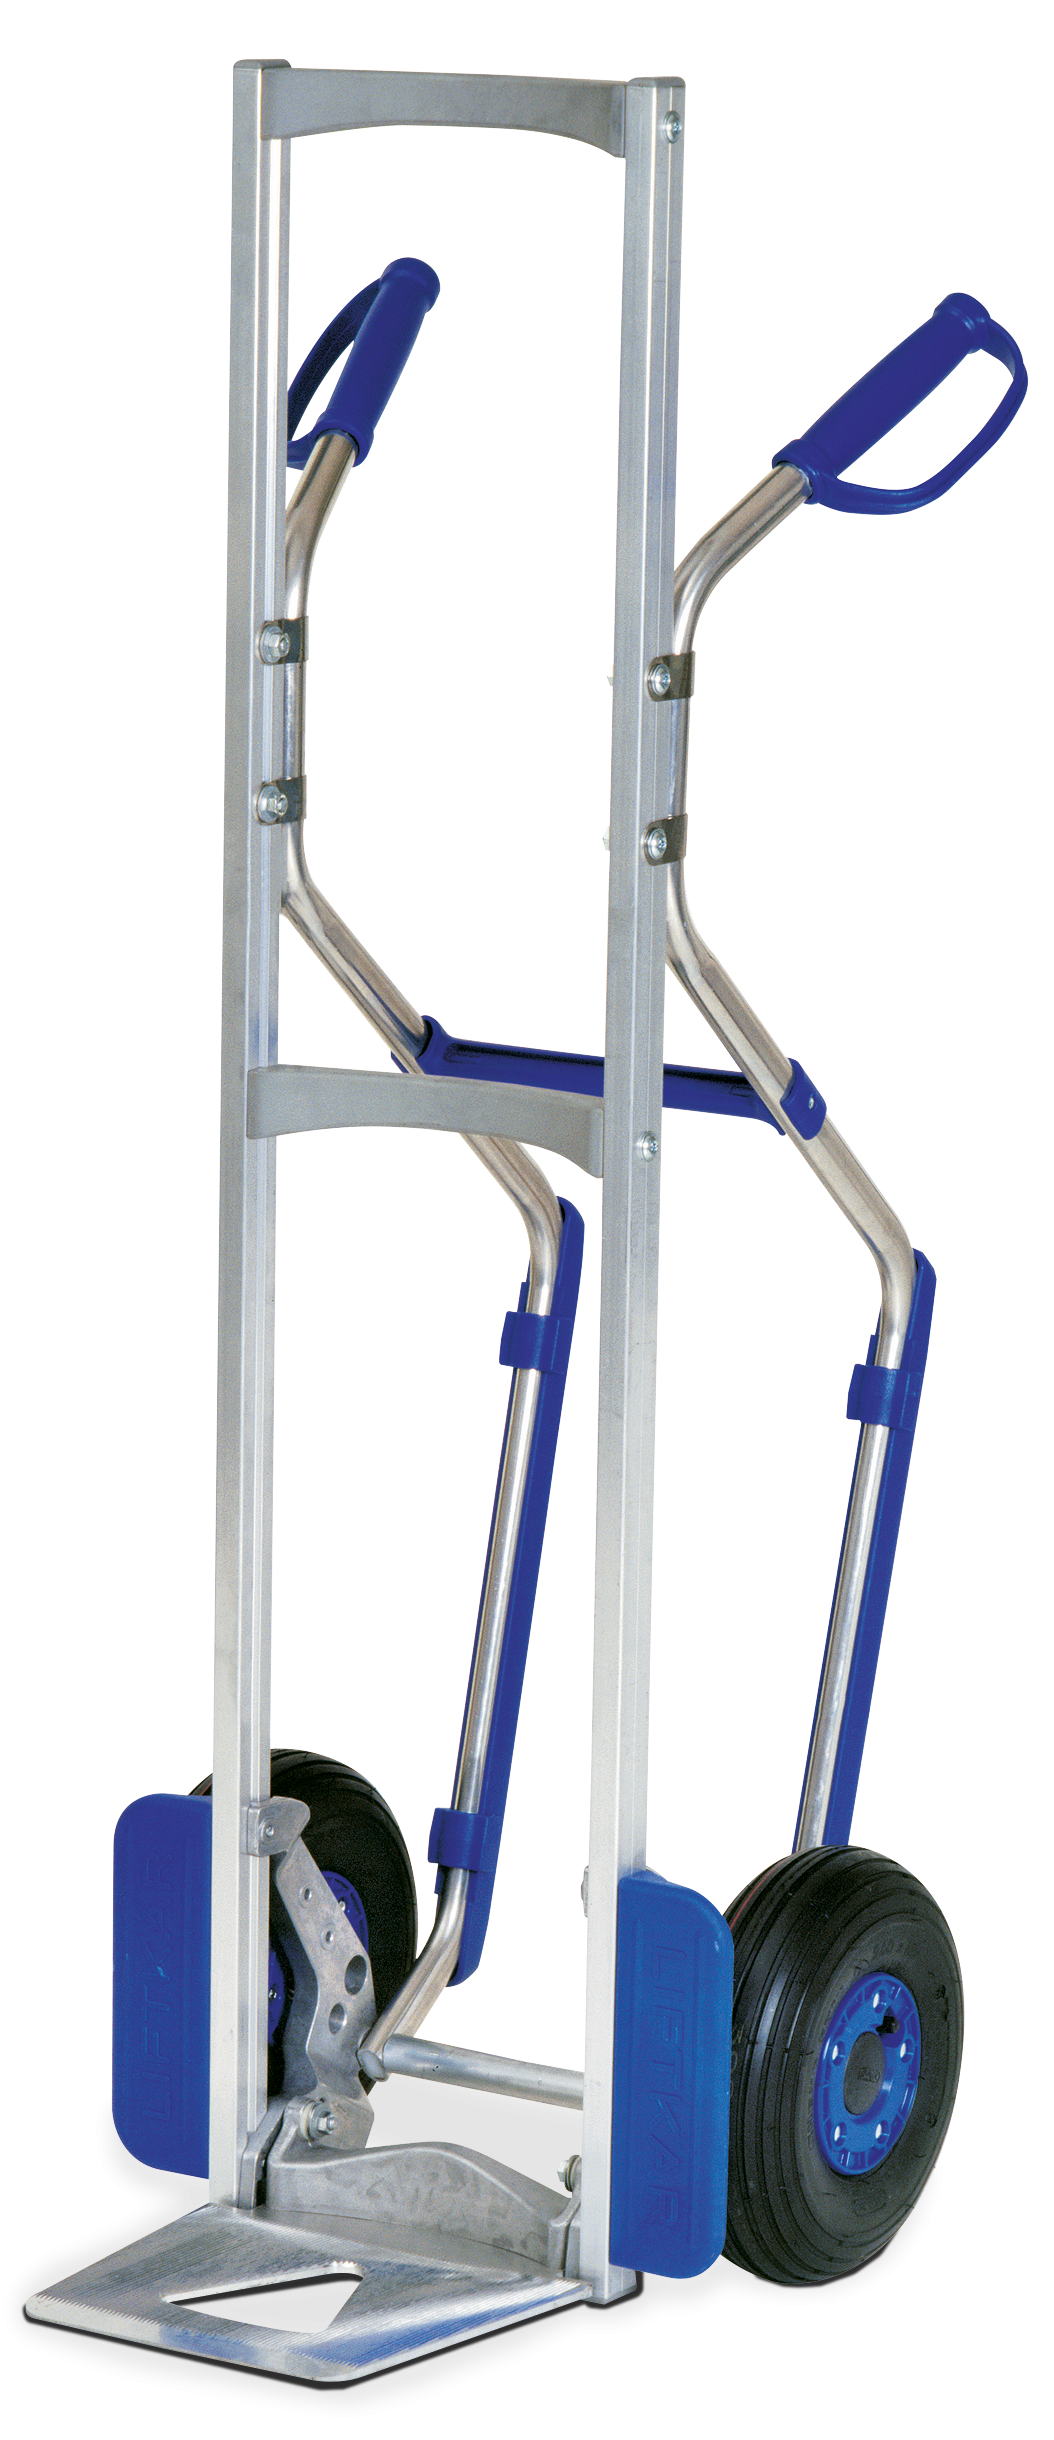 MODULKAR Hand truck with pistol grips and stair gliders